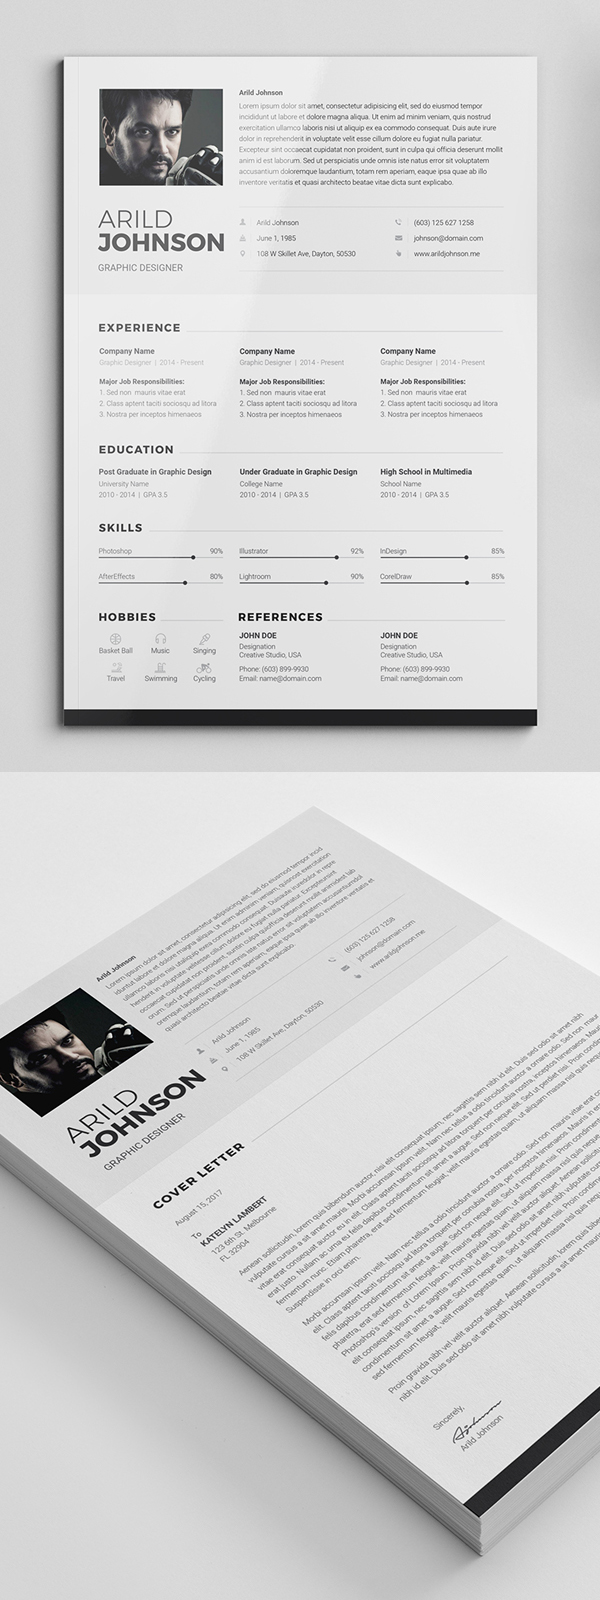 free cv resume templates best for design graphic junctiongraphic junction professional Resume Professional Resume Templates 2018 Free Download